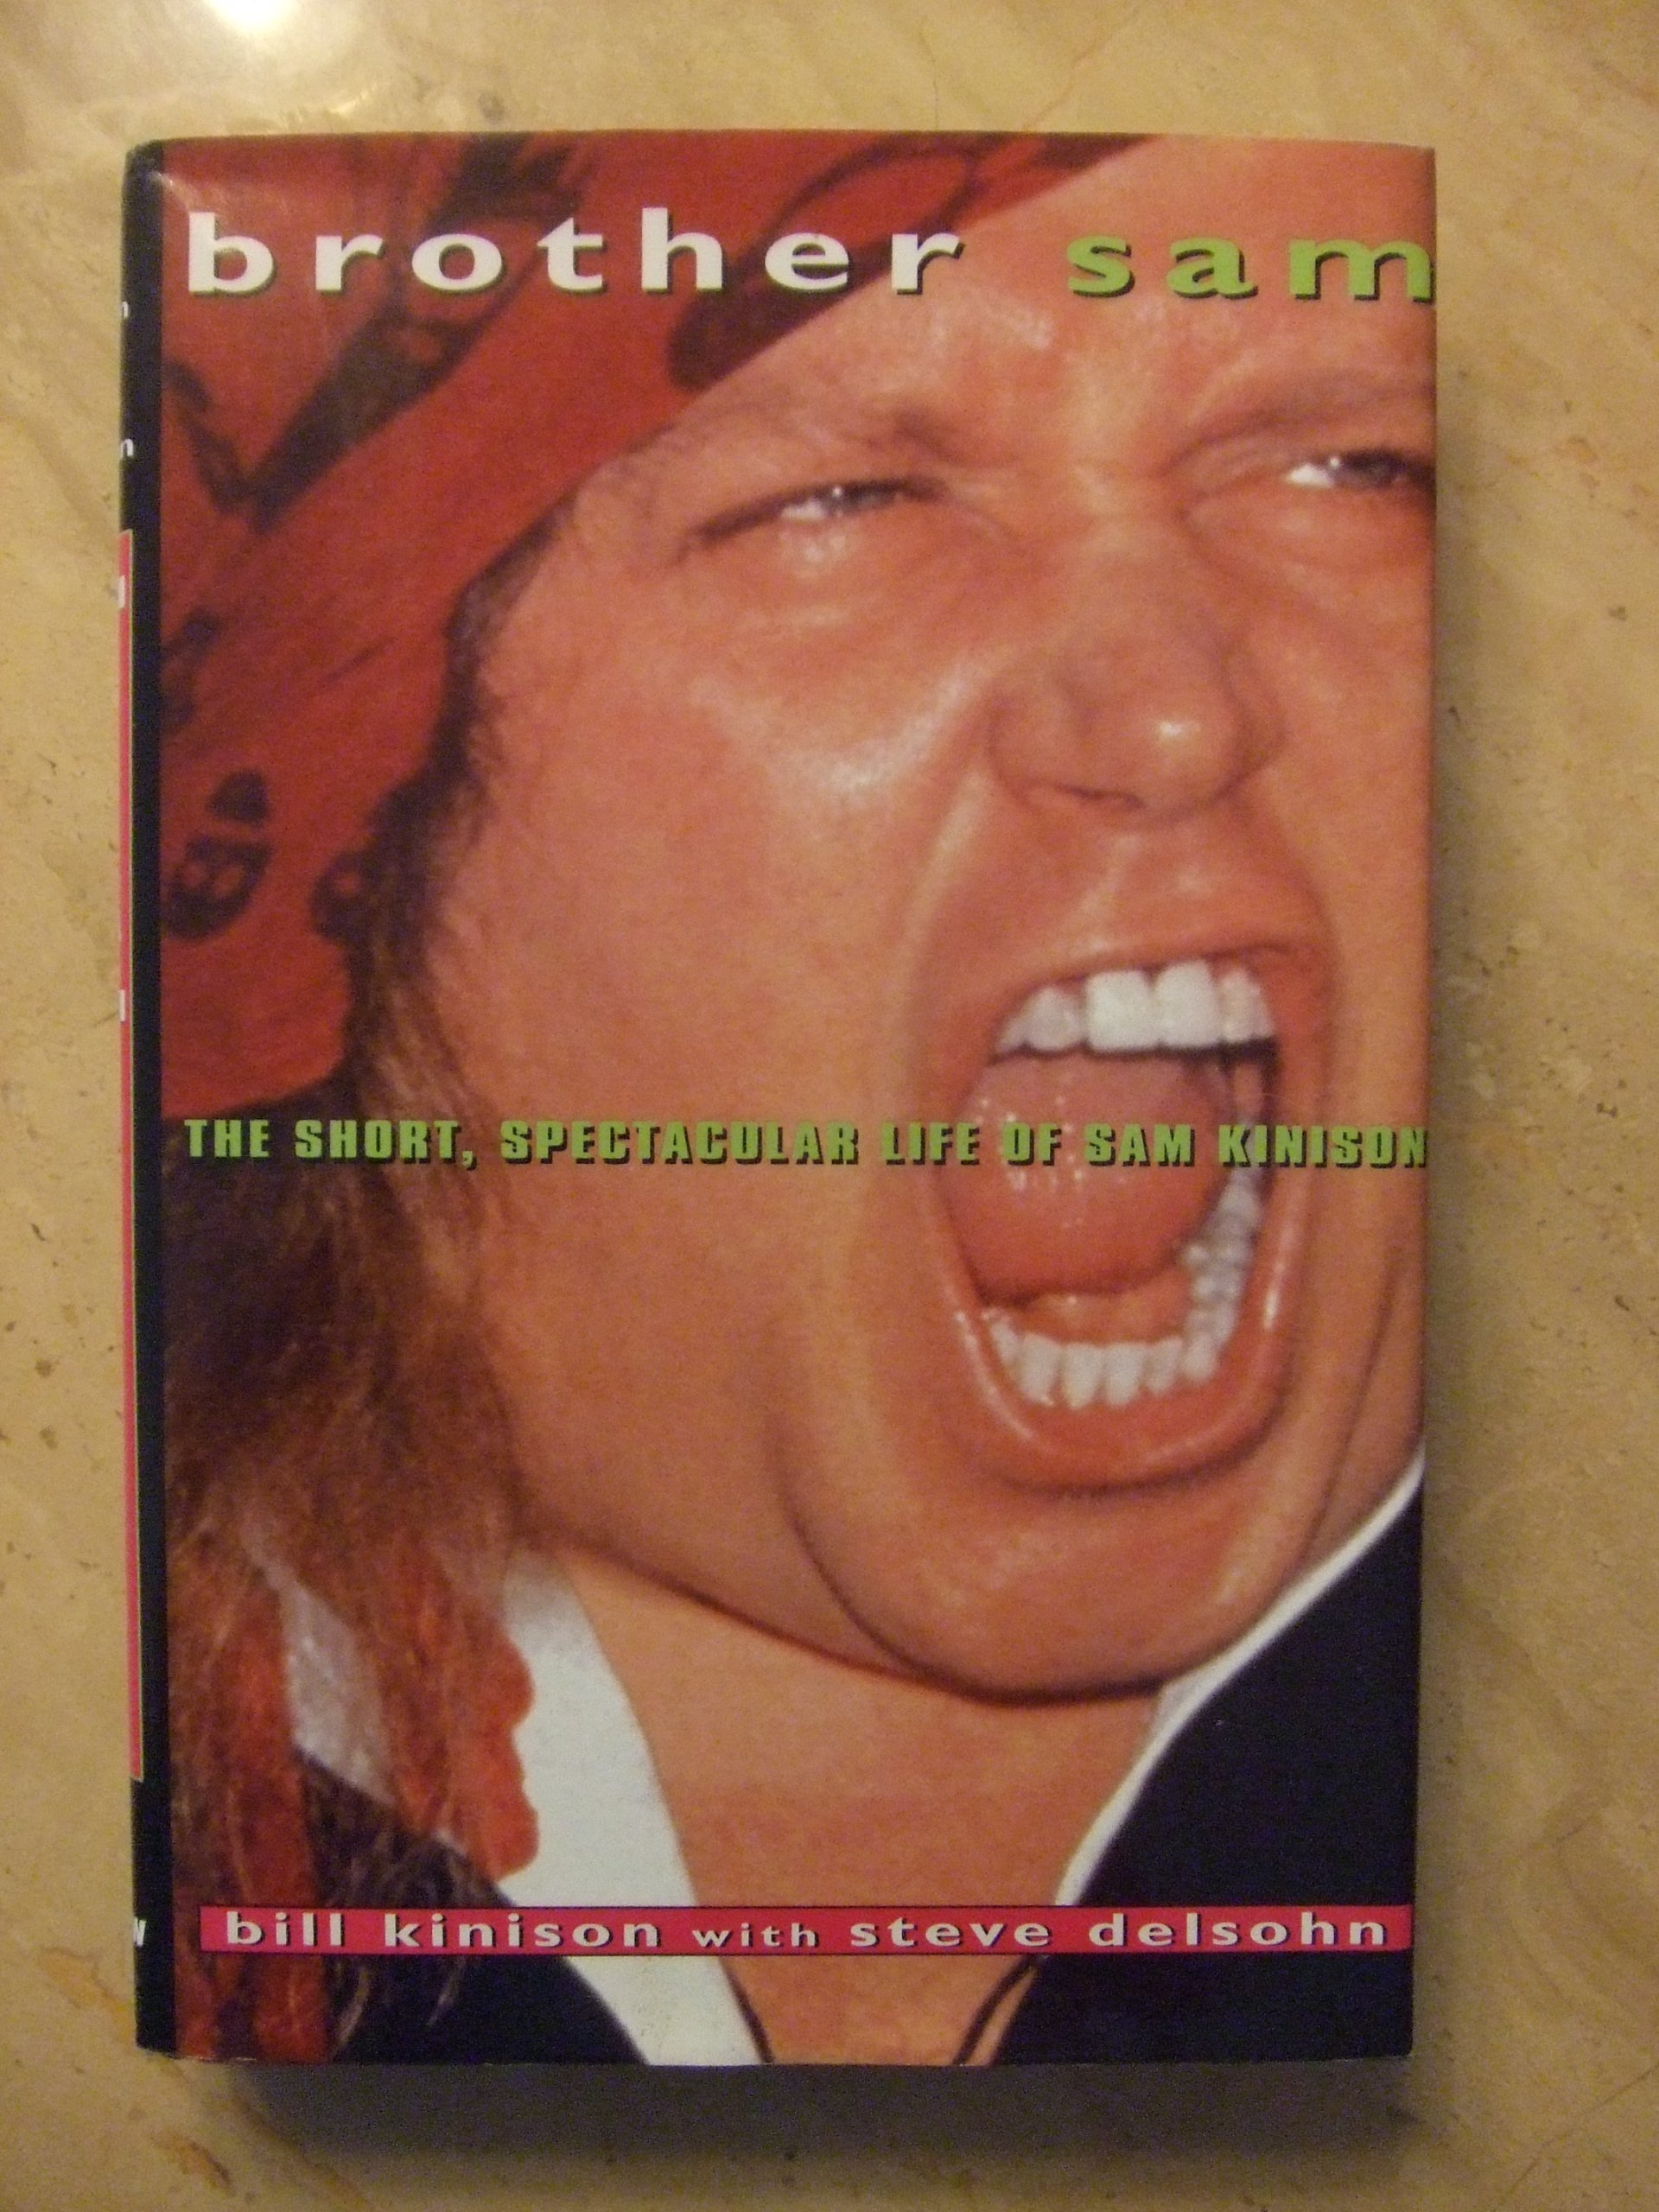 Sam kinison accident scene photos - Brother Sam The Short Spectacular Life Of Sam Kinison Bill Kinison Steve Delsohn 9780688126346 Amazon Com Books